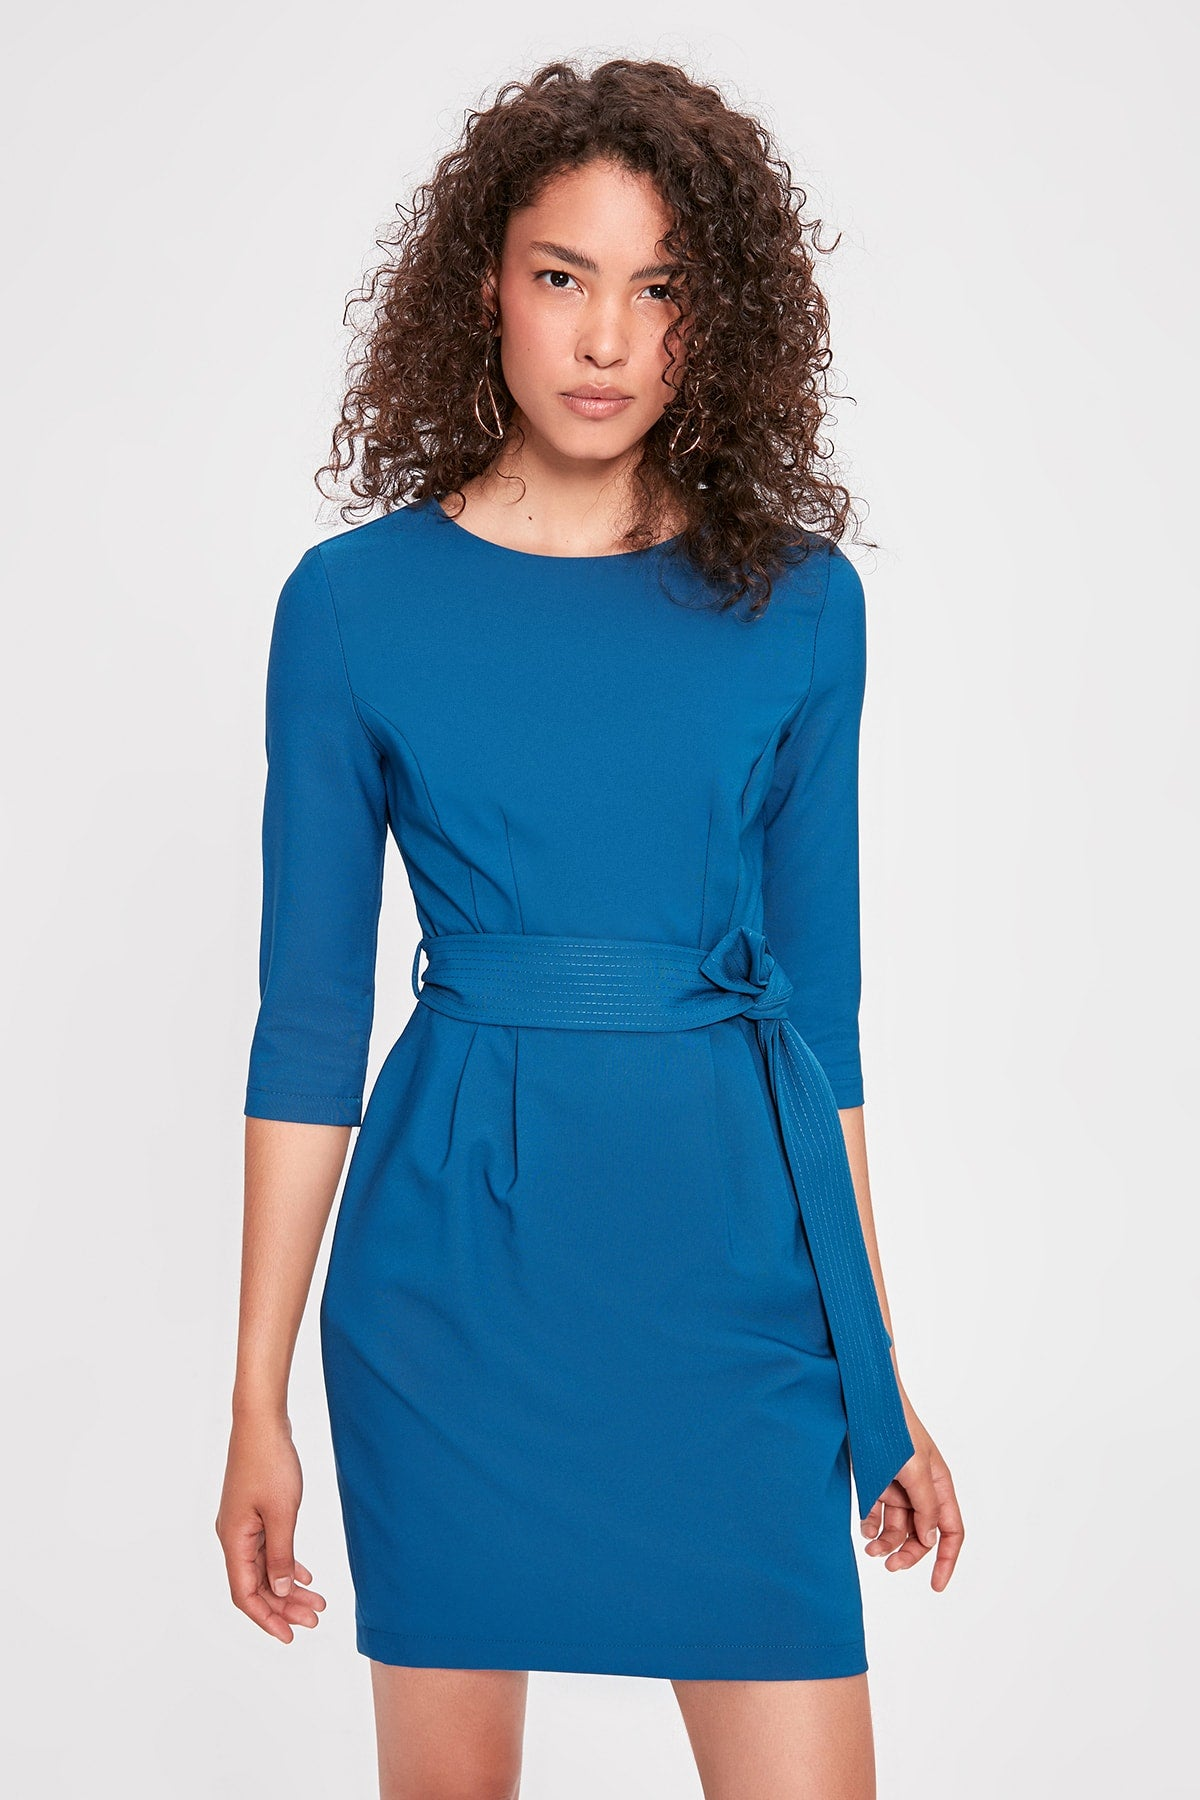 Sophia Dress Blue